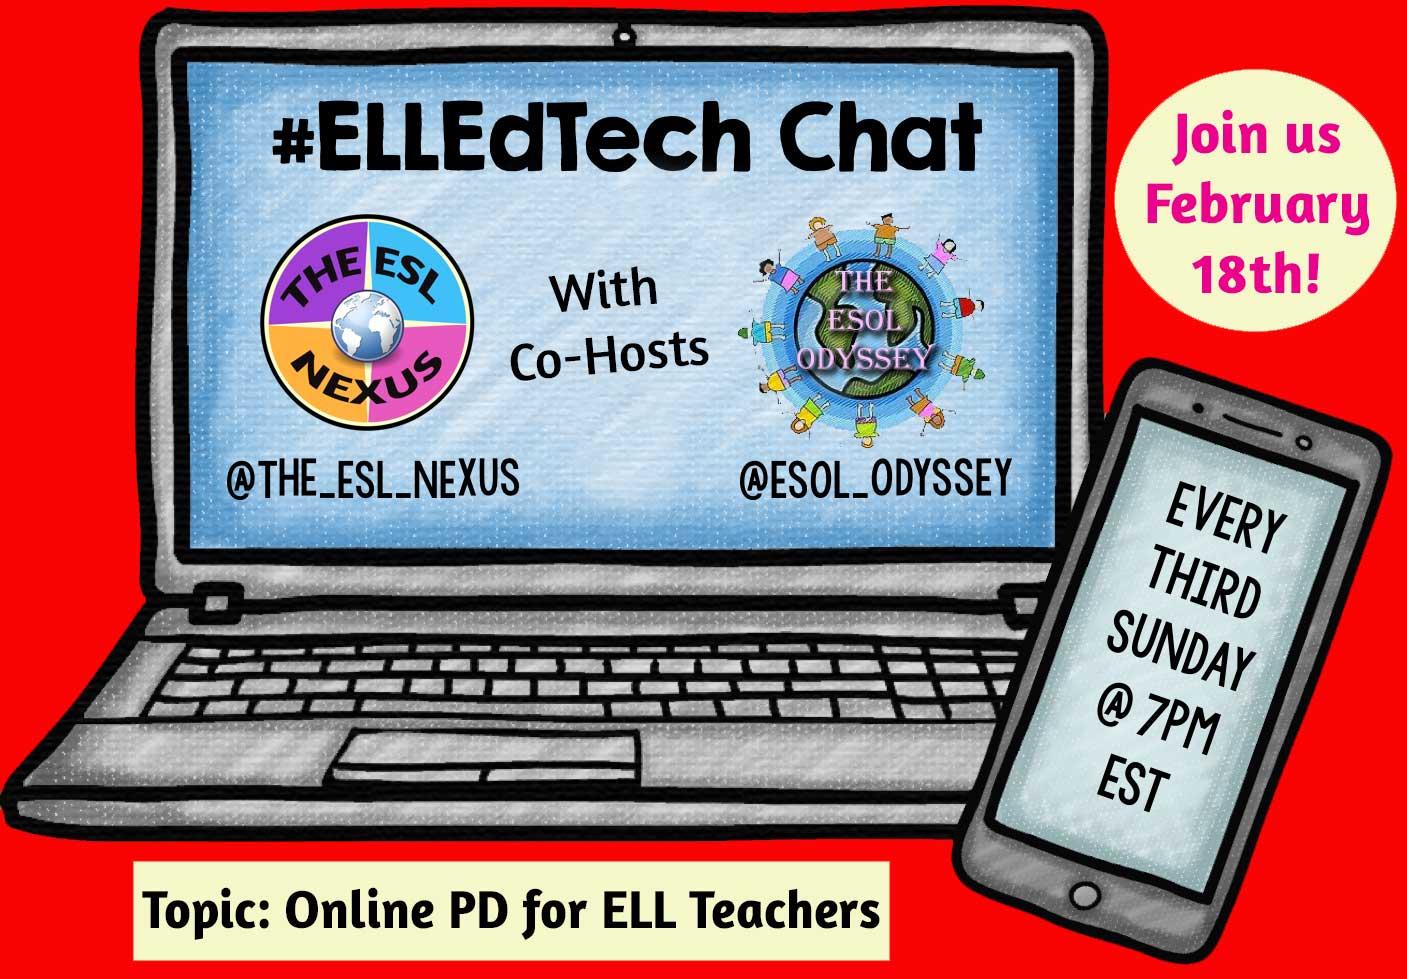 Discover some online sources of PD for teachers of ELLs in the February #ELLEdTech chat on 2/18/18 | The ESL Nexus